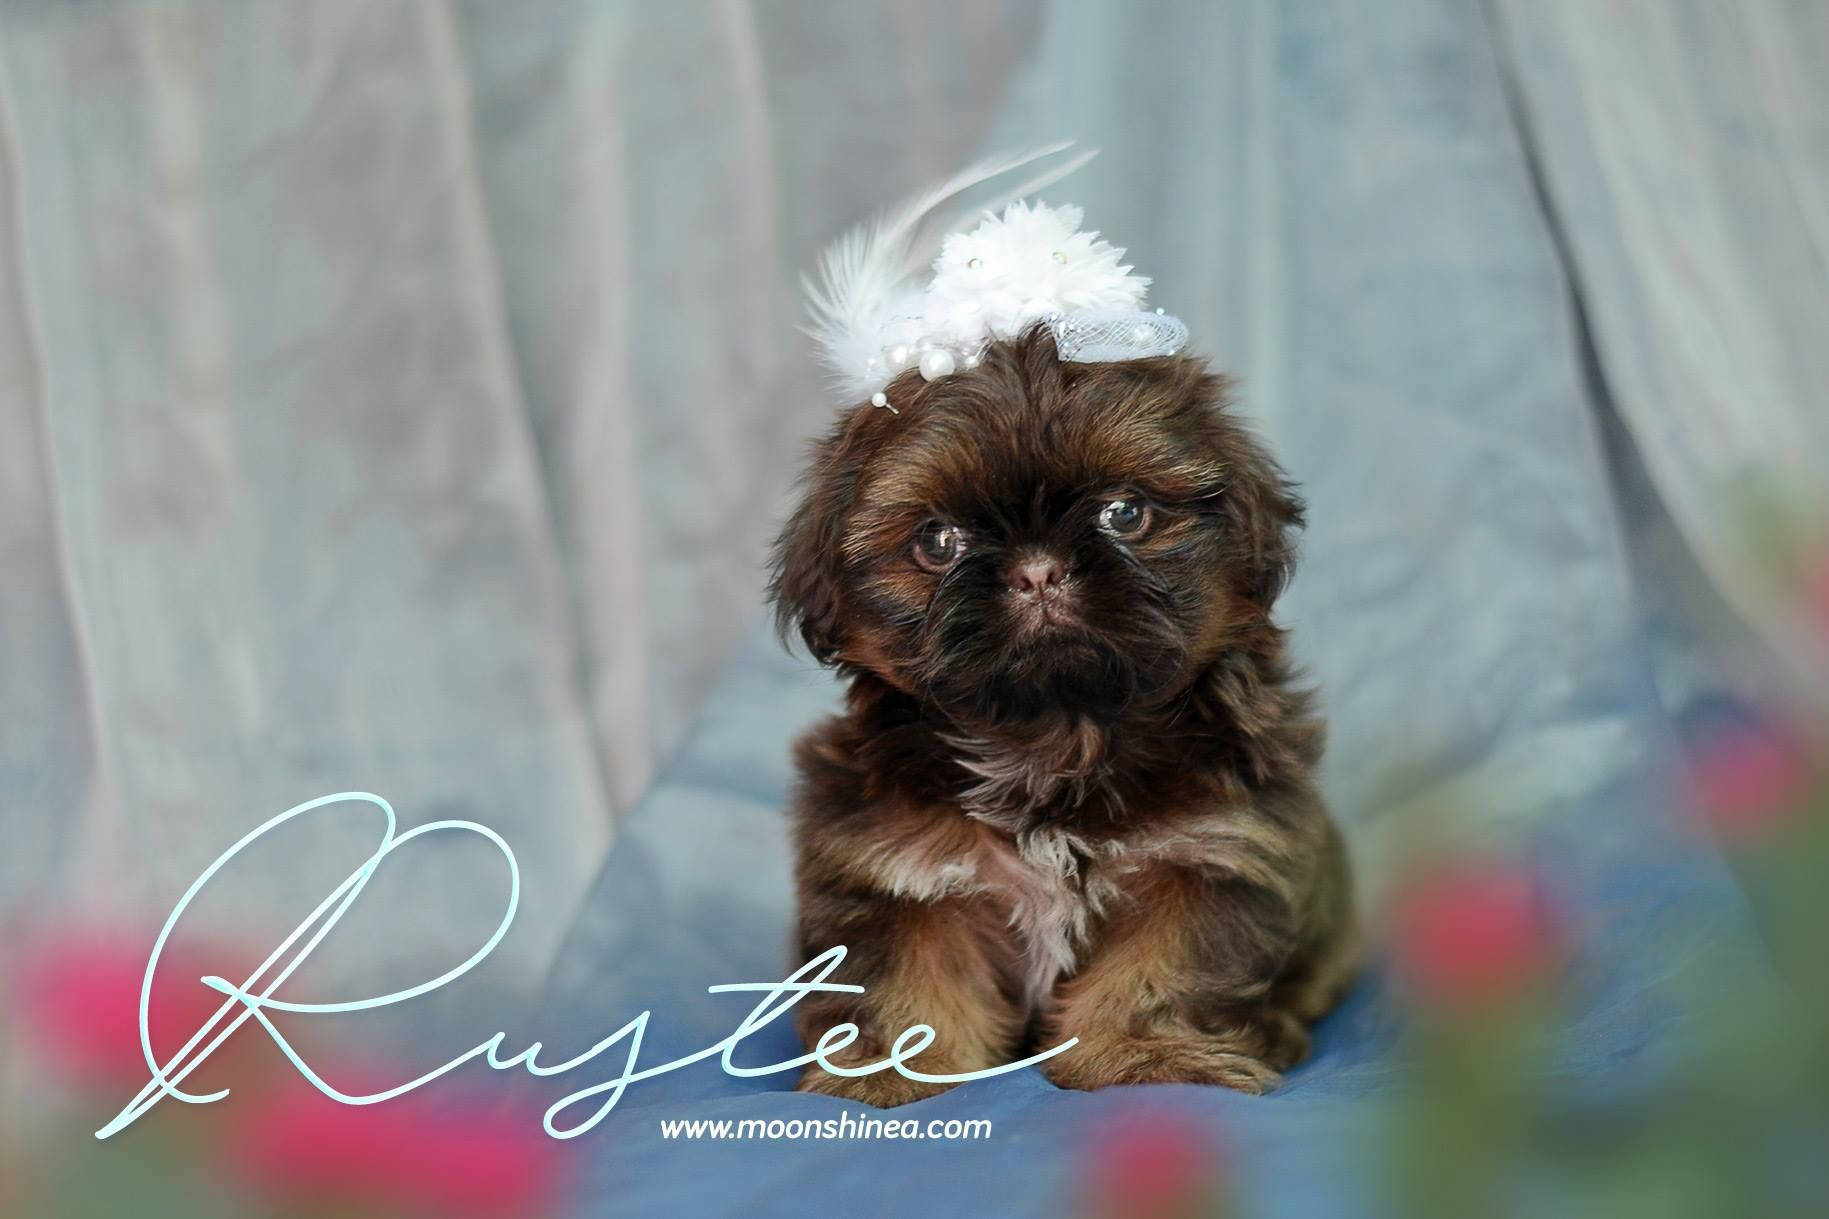 Doll Face Imperial Shih Tzu Philippines Shihtzu Imperial Shih Tzu Shih Tzu Shih Tzu Puppy